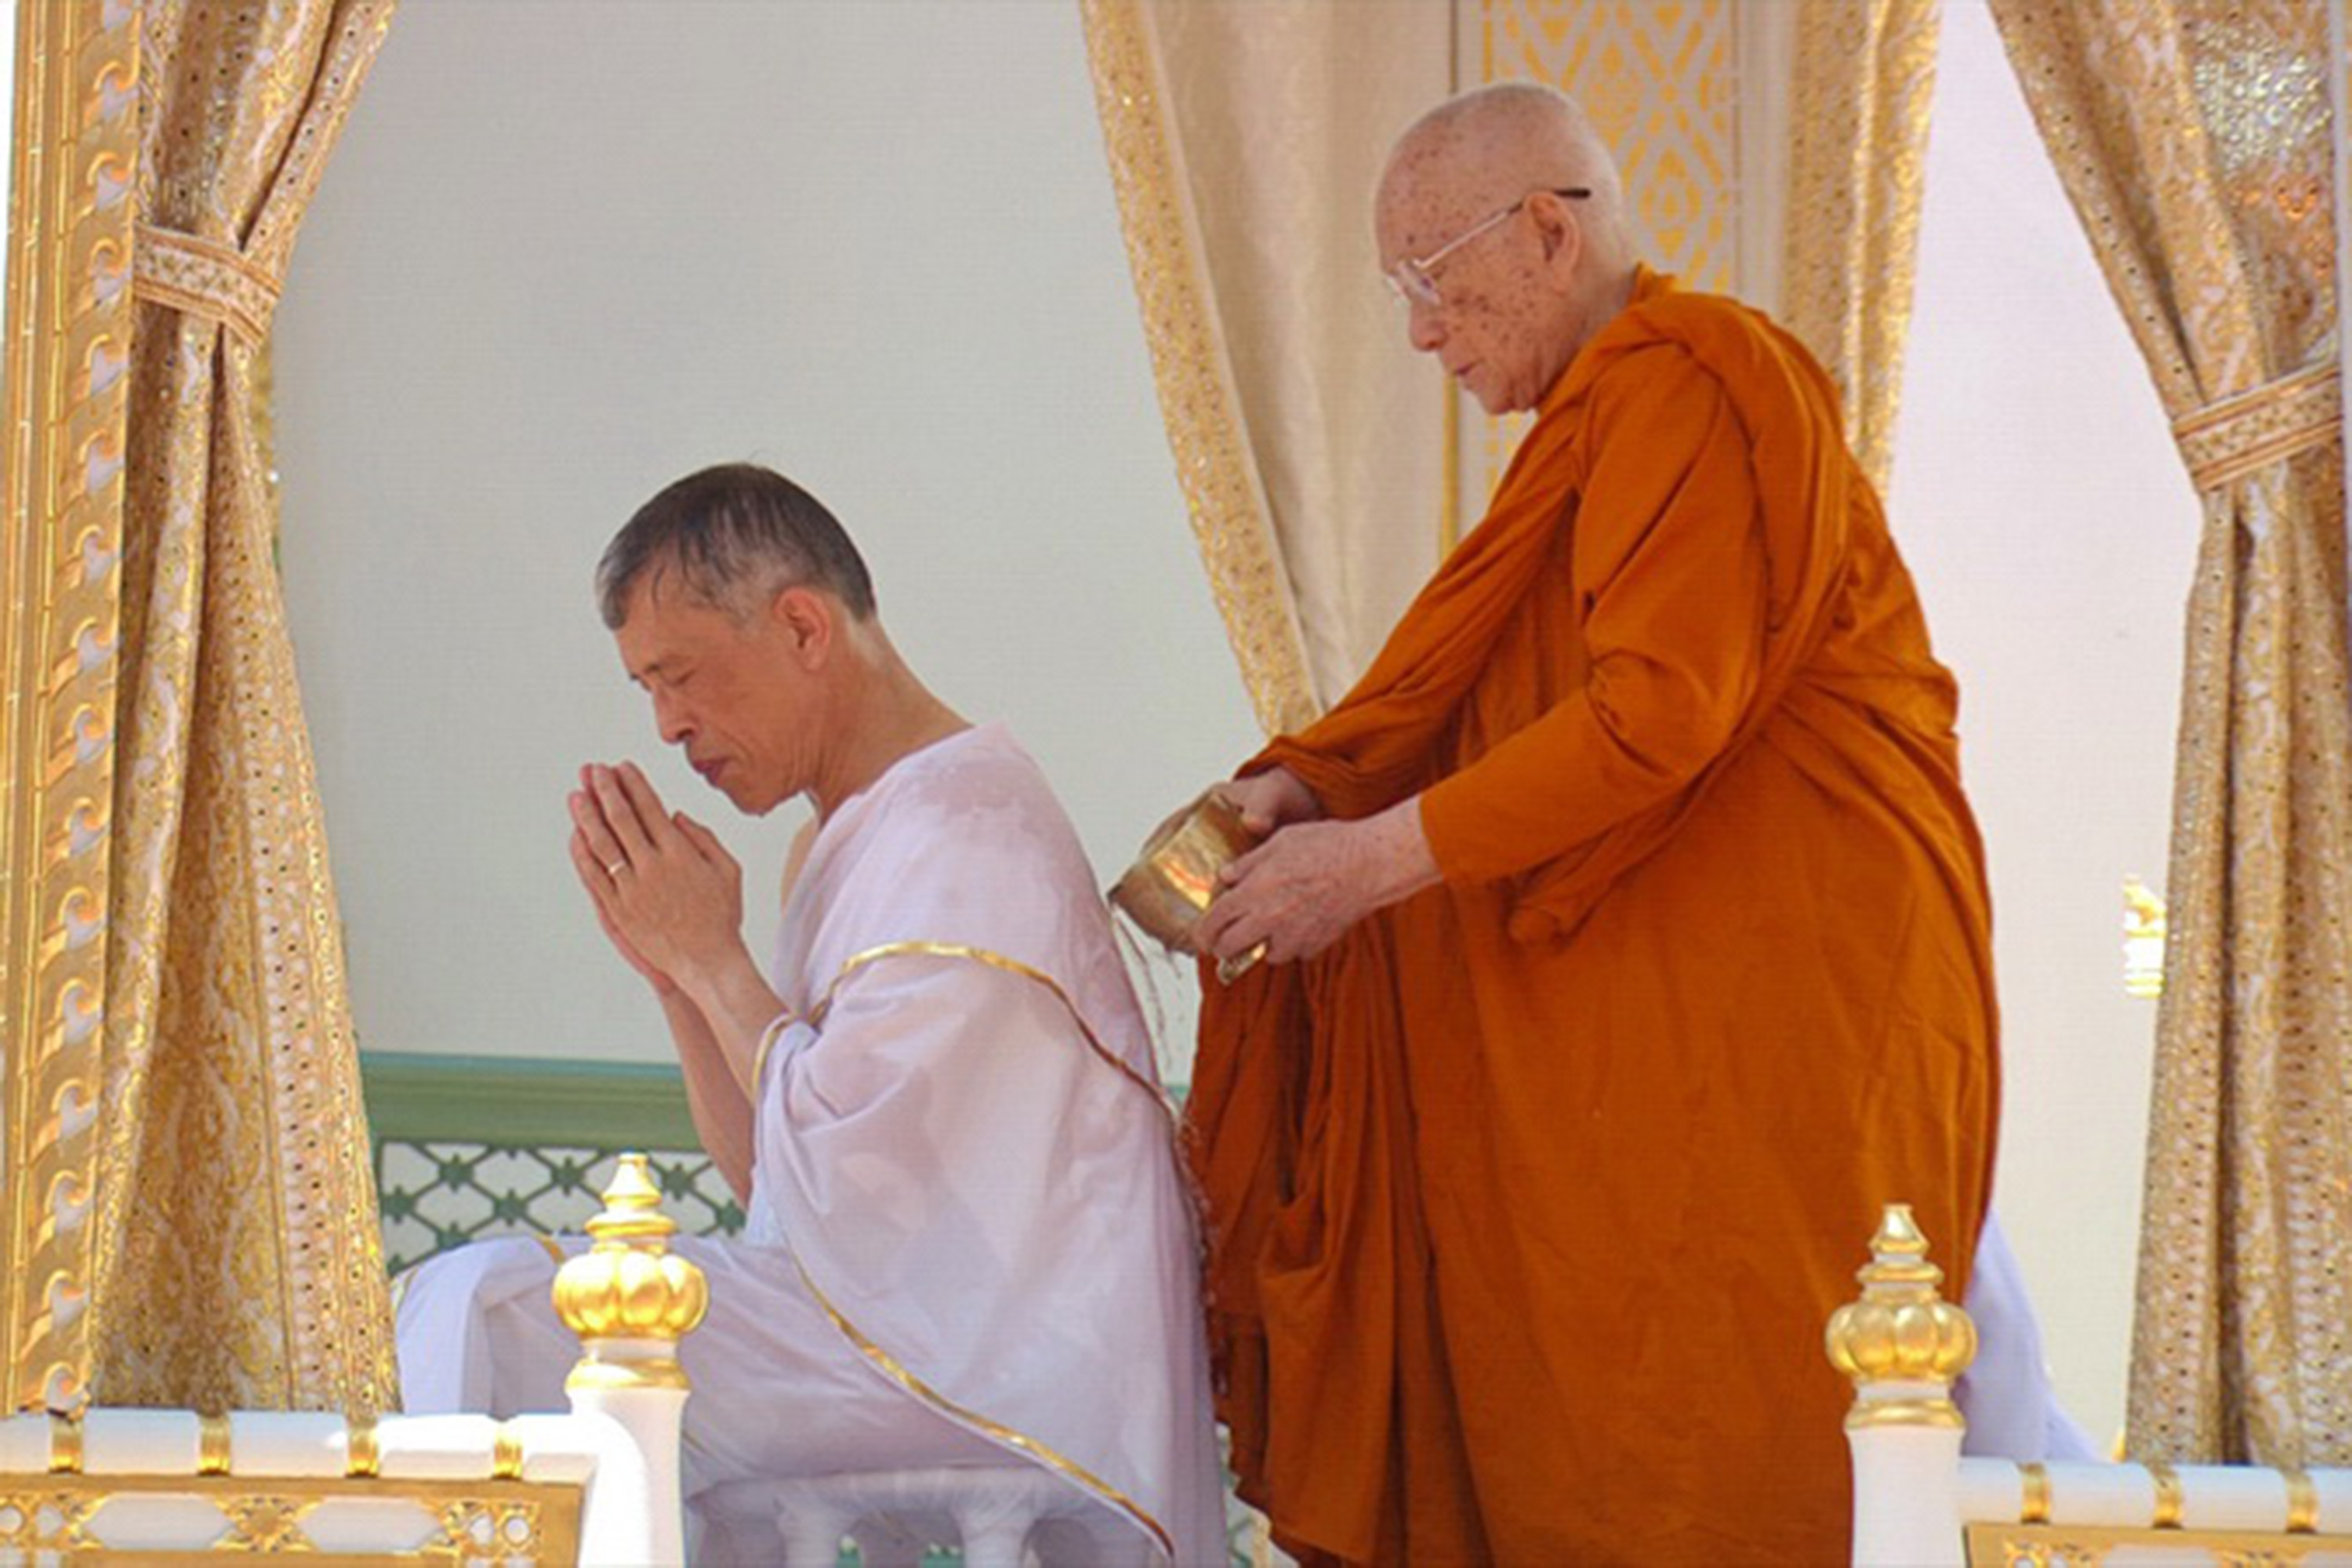 Thai King Maha Vajiralongkorn during the royal purification abbot as part of the the coronation ceremony at the Grand Palace in Bangkok, Thailand, on May 4, 2019.